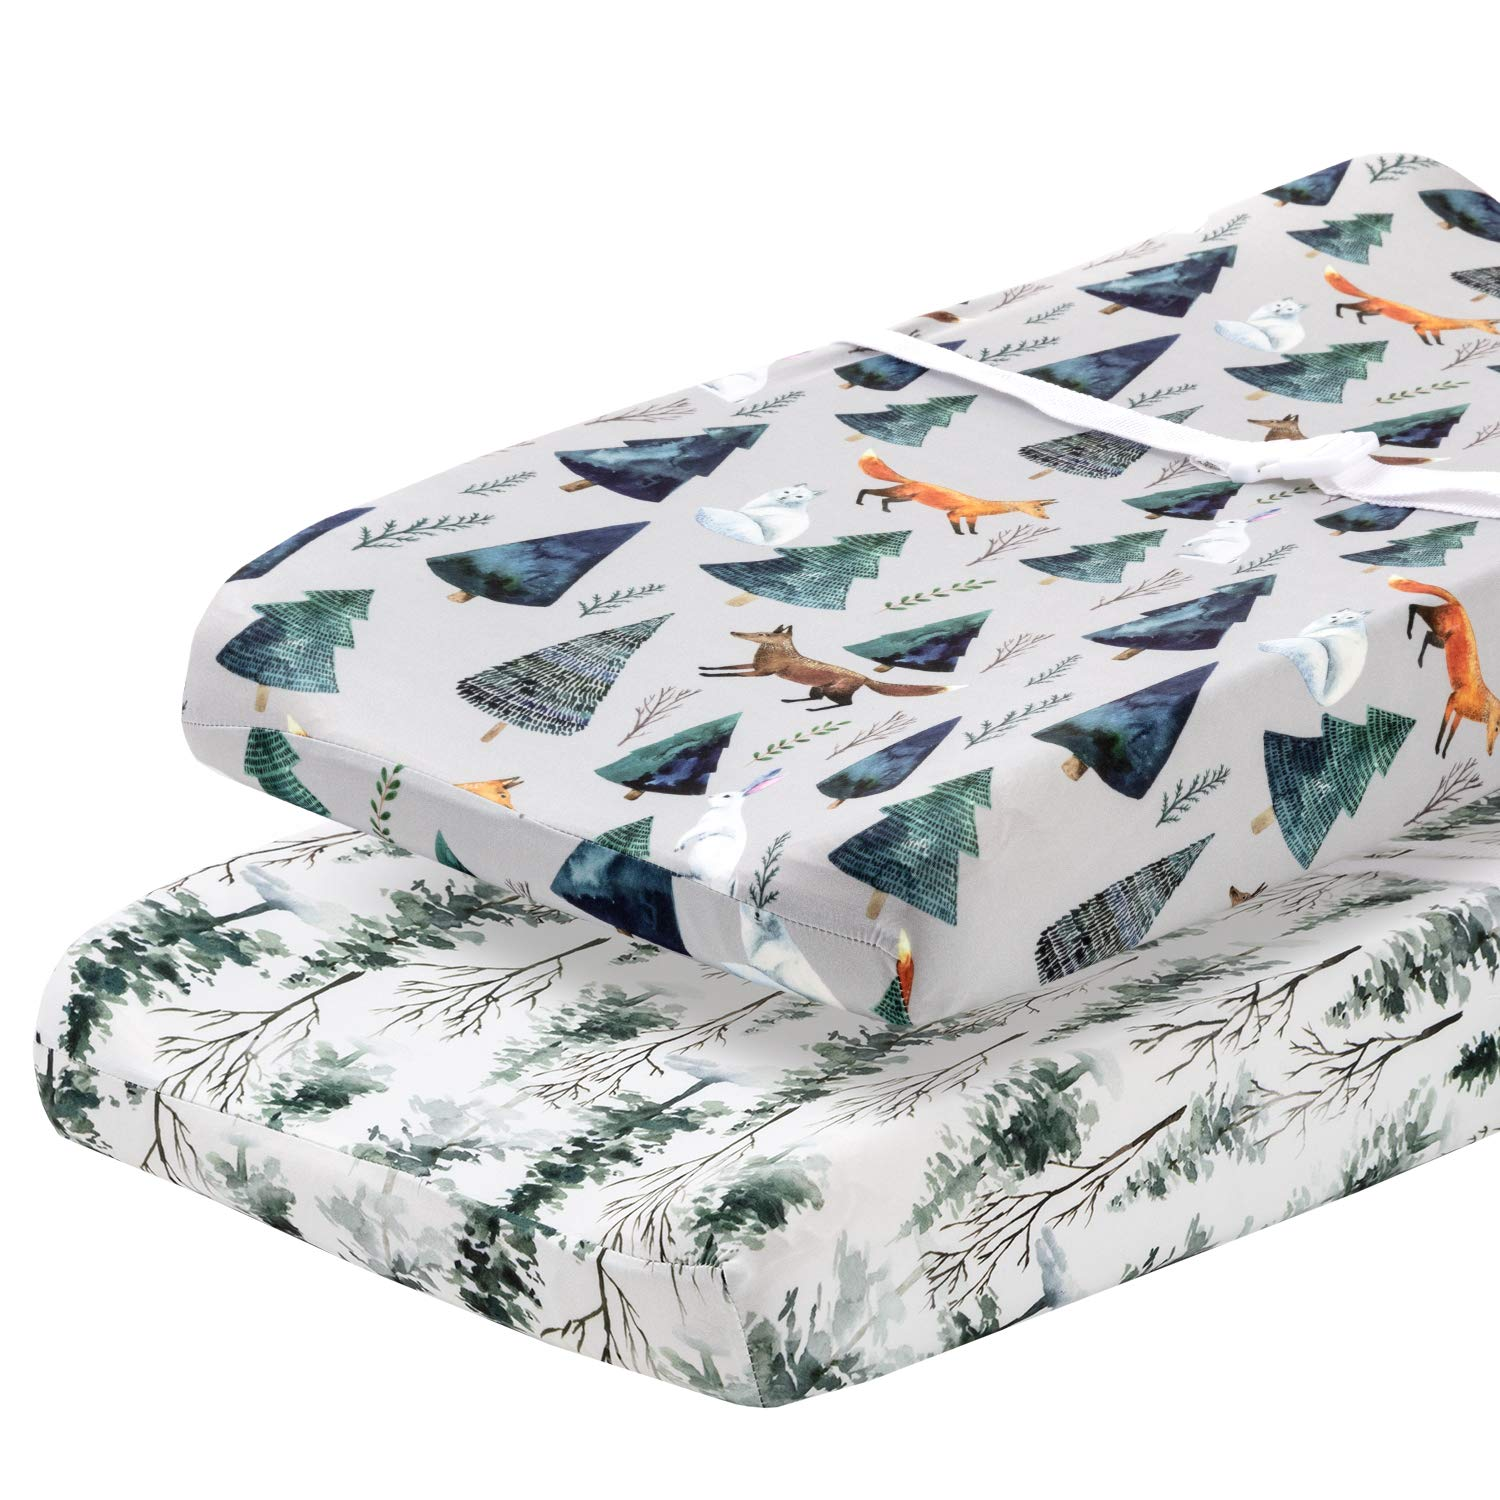 Pobi Baby - 2 Pack Premium Quality Changing Pad Cover - Ultra-Soft Cotton Blend, Stylish Animal Woodland Pattern, Safe and Snug for Baby (Magical)